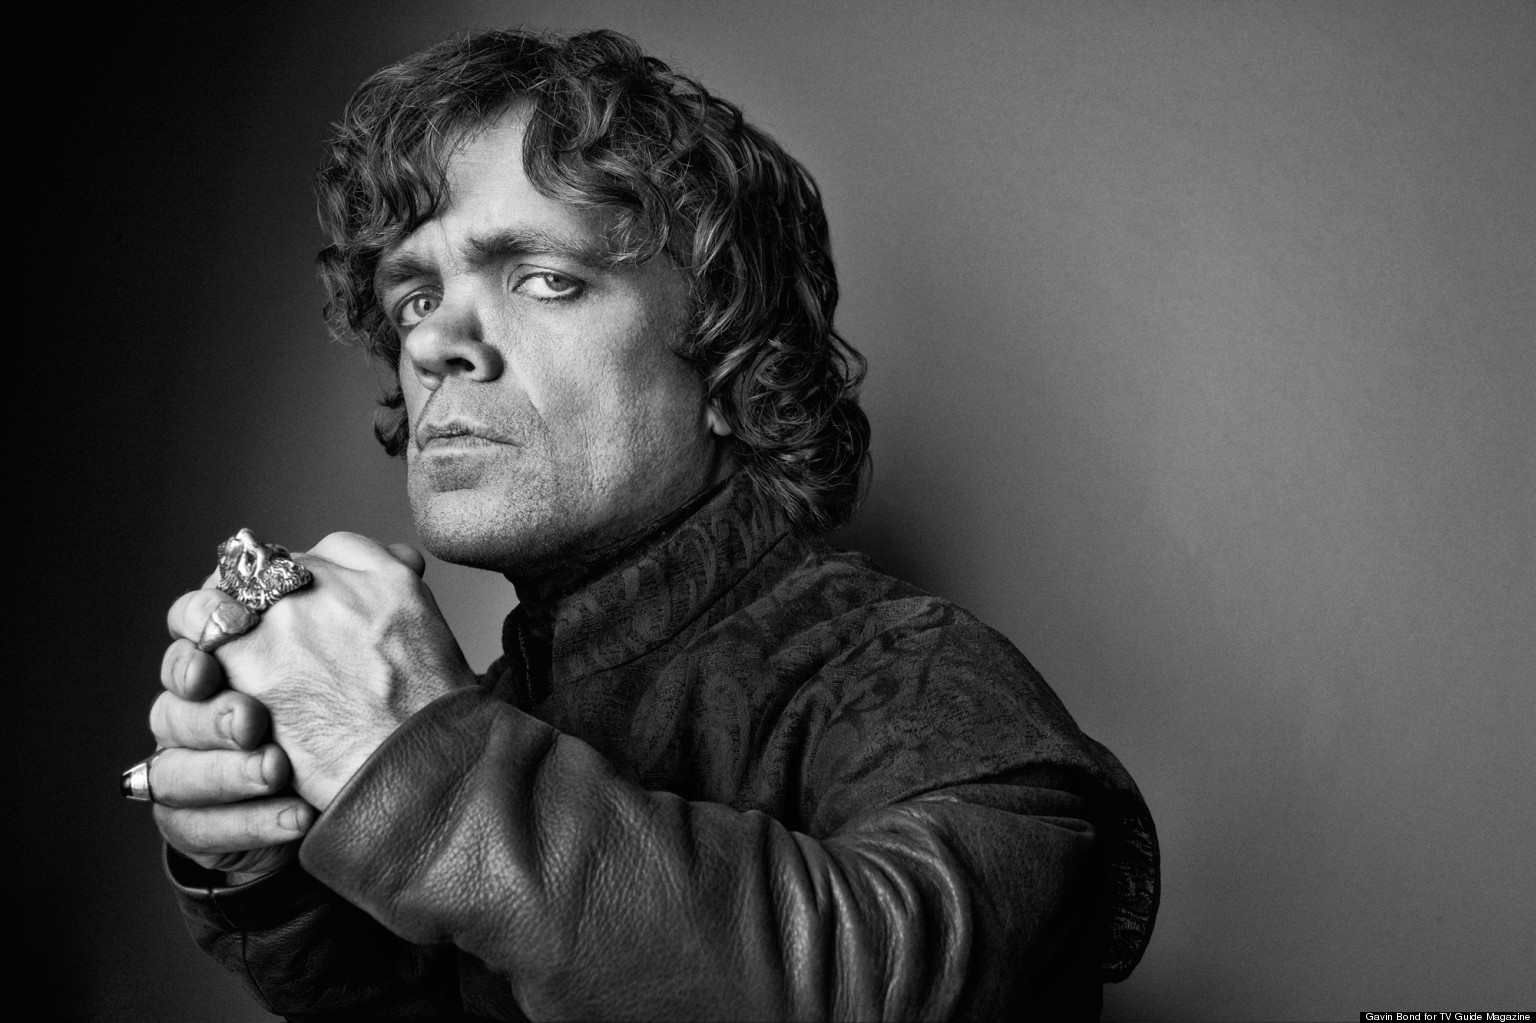 Gorgeous New 'Game Of Thrones' Portraits Of Peter Dinklage